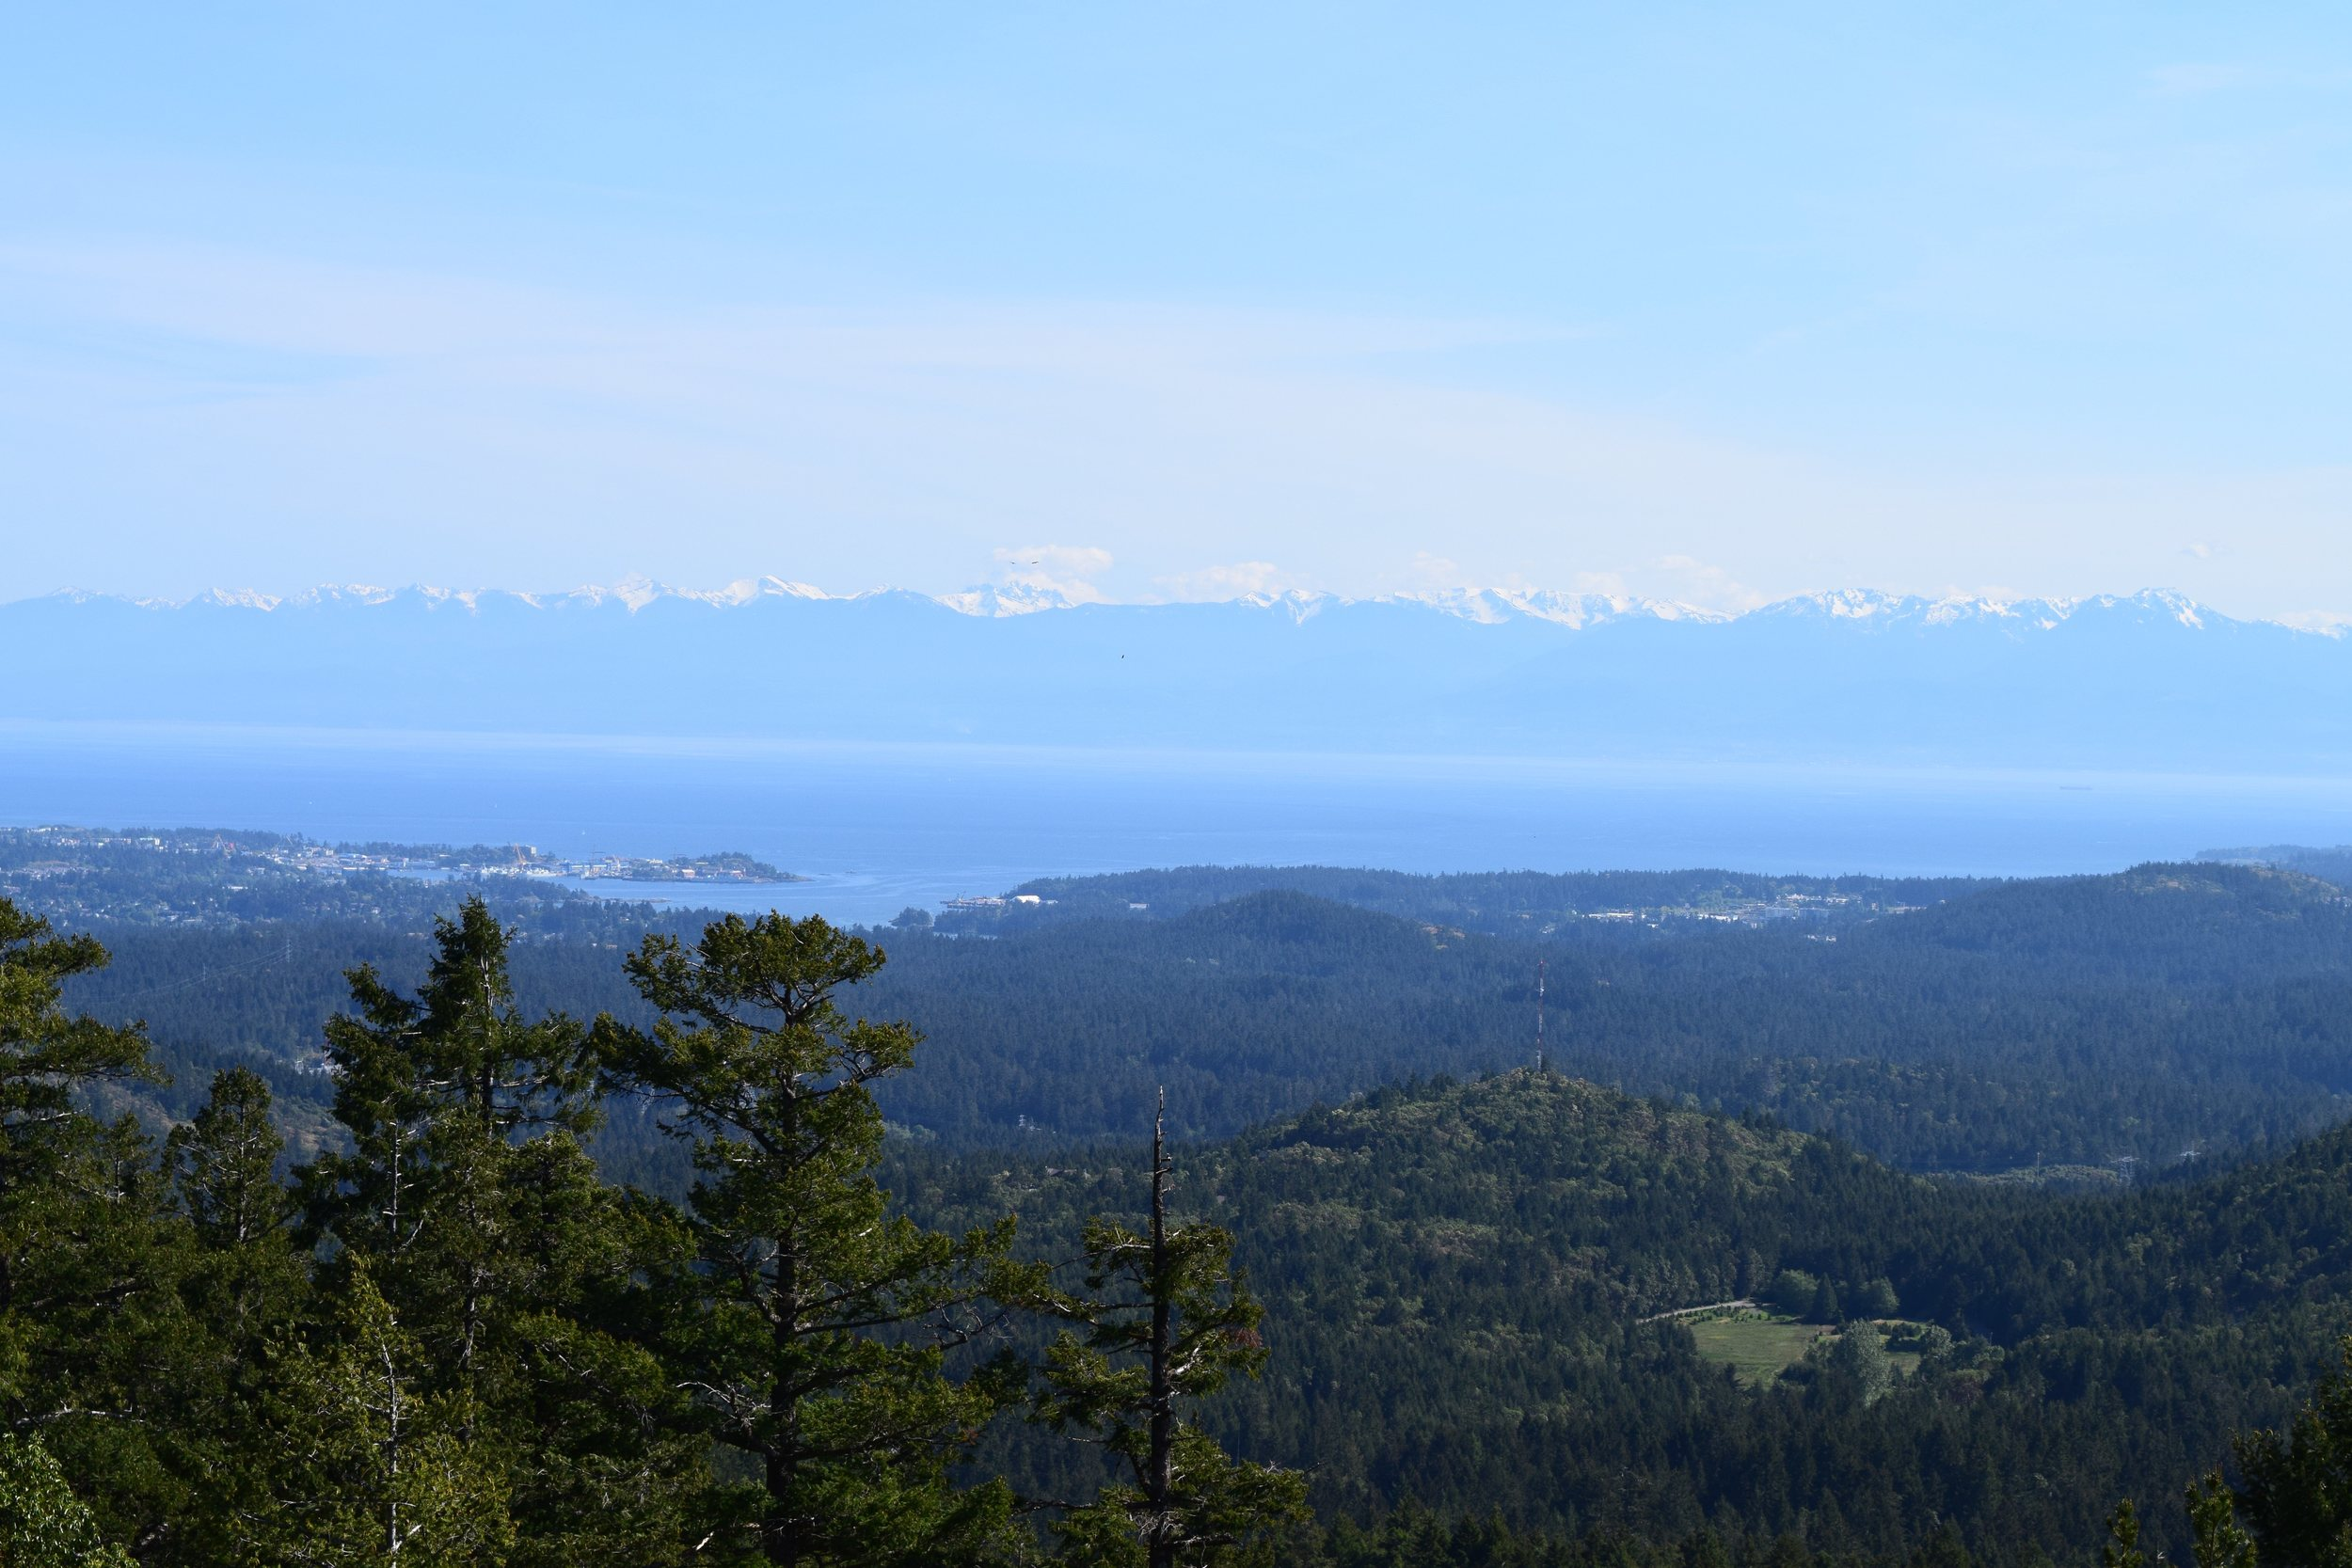 View of the Strait of Juan De Fuca and Olympic Mountains